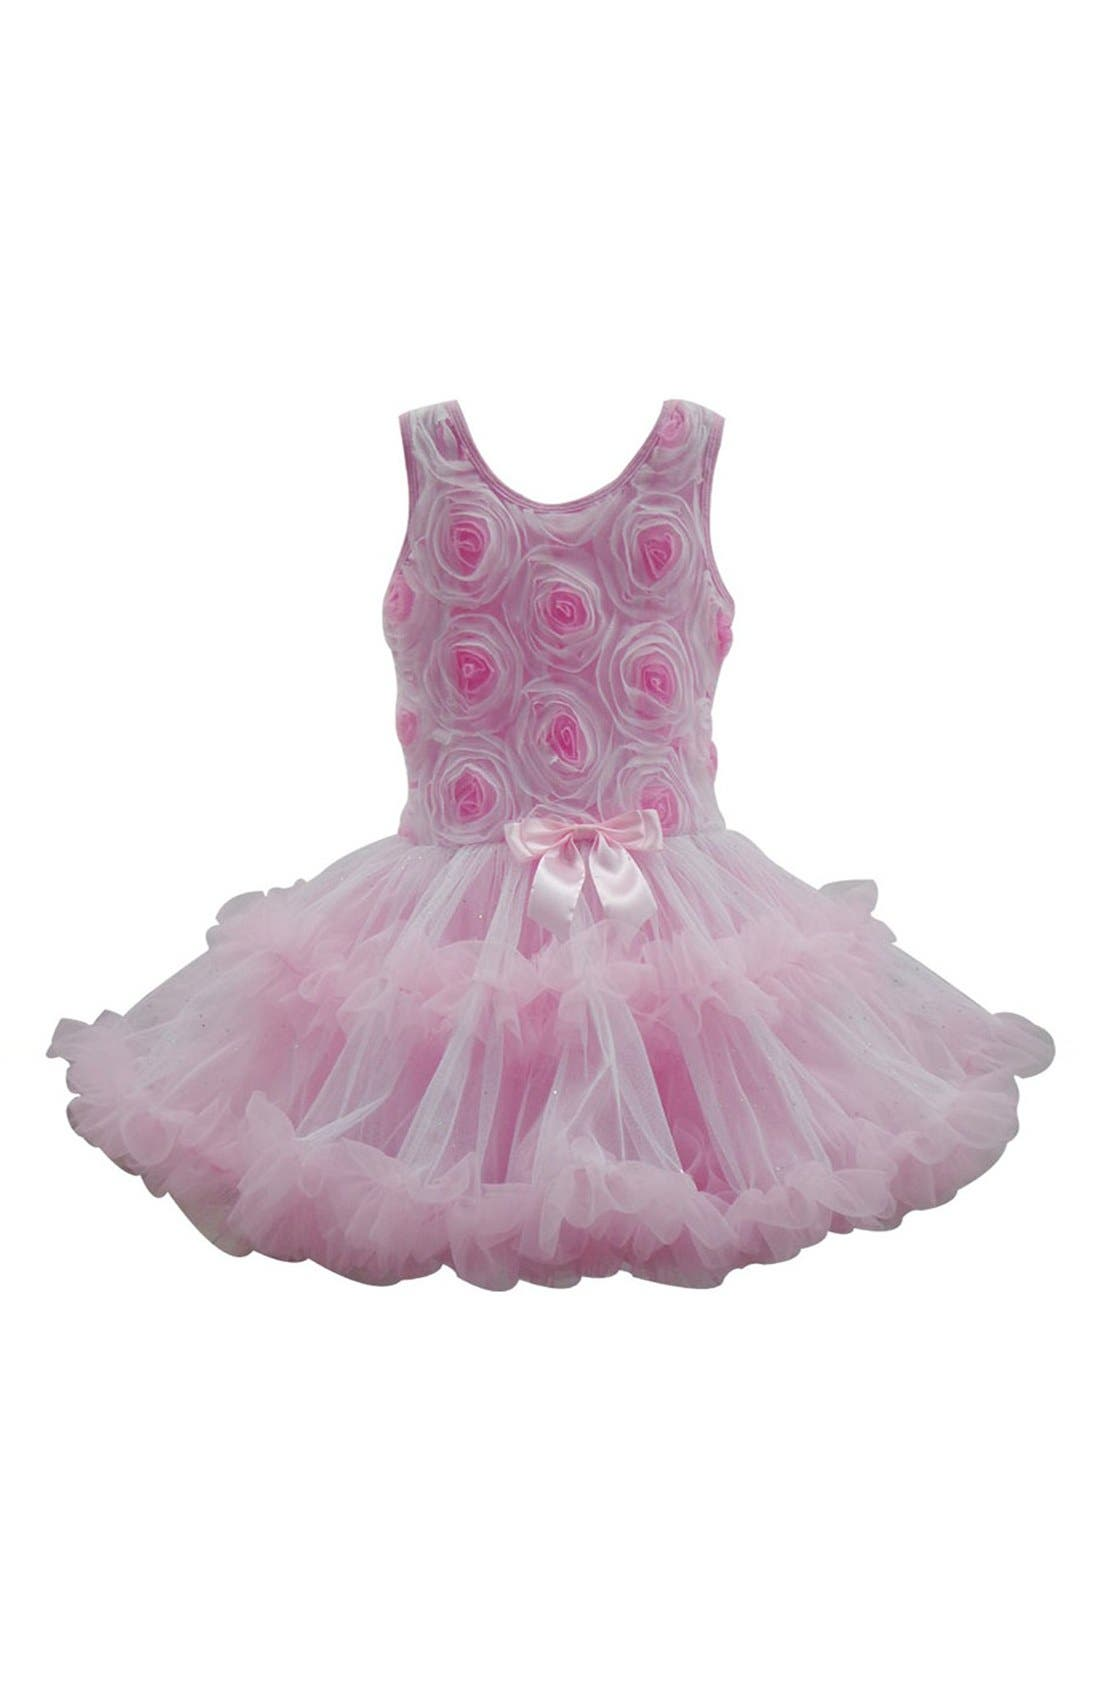 Ribbon Rosette Flower Petidress,                         Main,                         color, 650